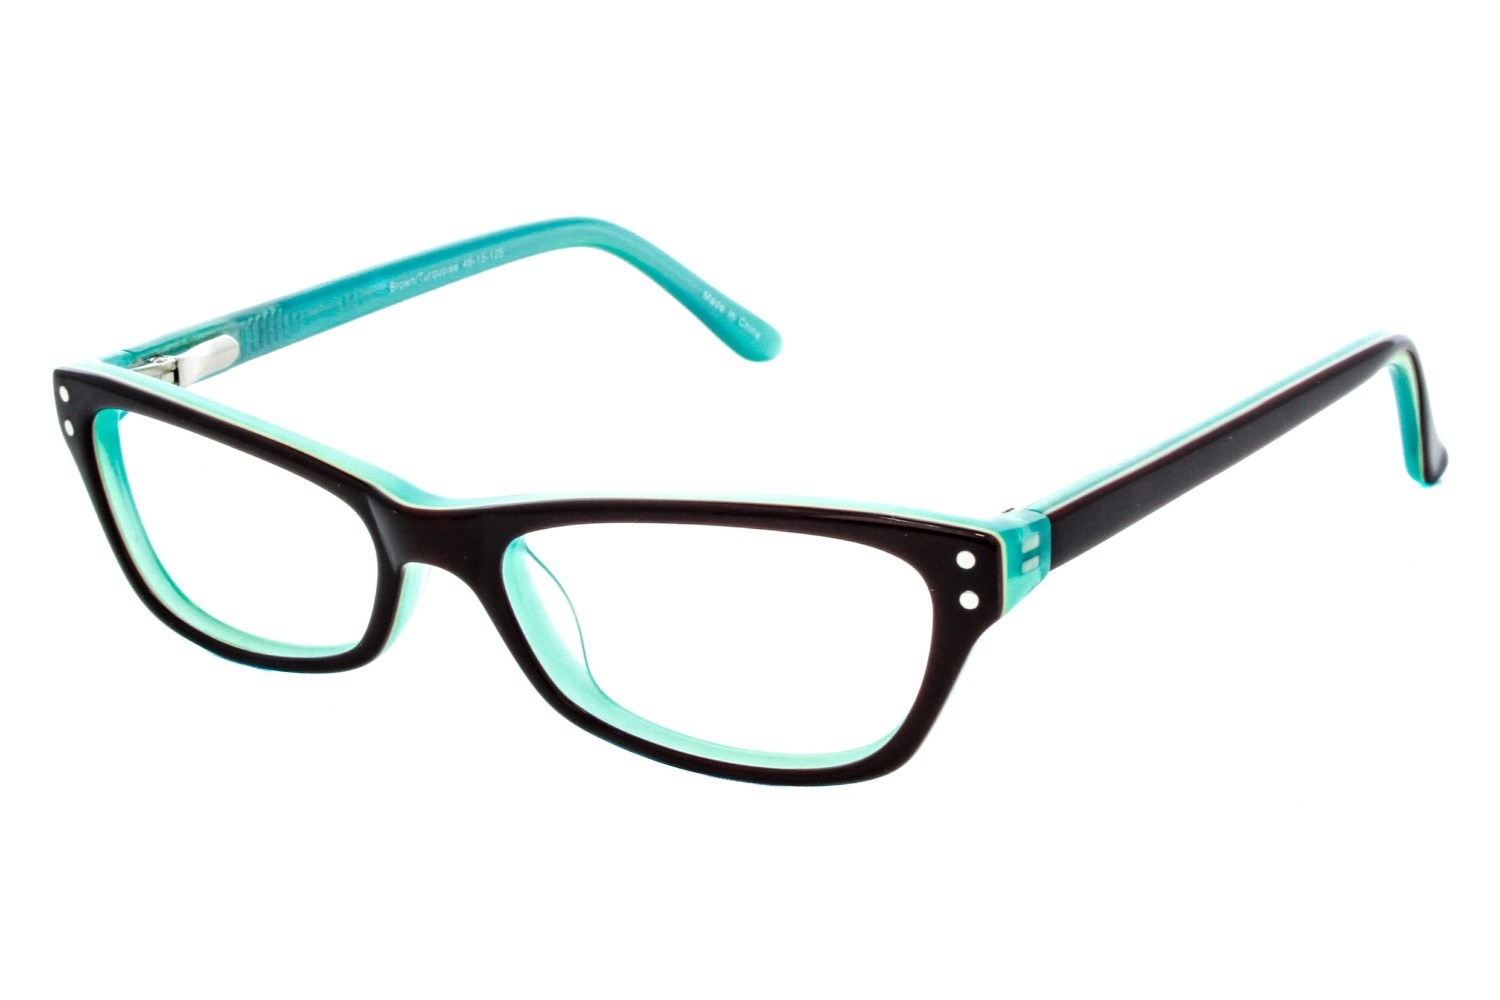 74e6dac809b4 SKU-AC20782 Lunettos Candy Eyeglasses Frames from Discount Glasses